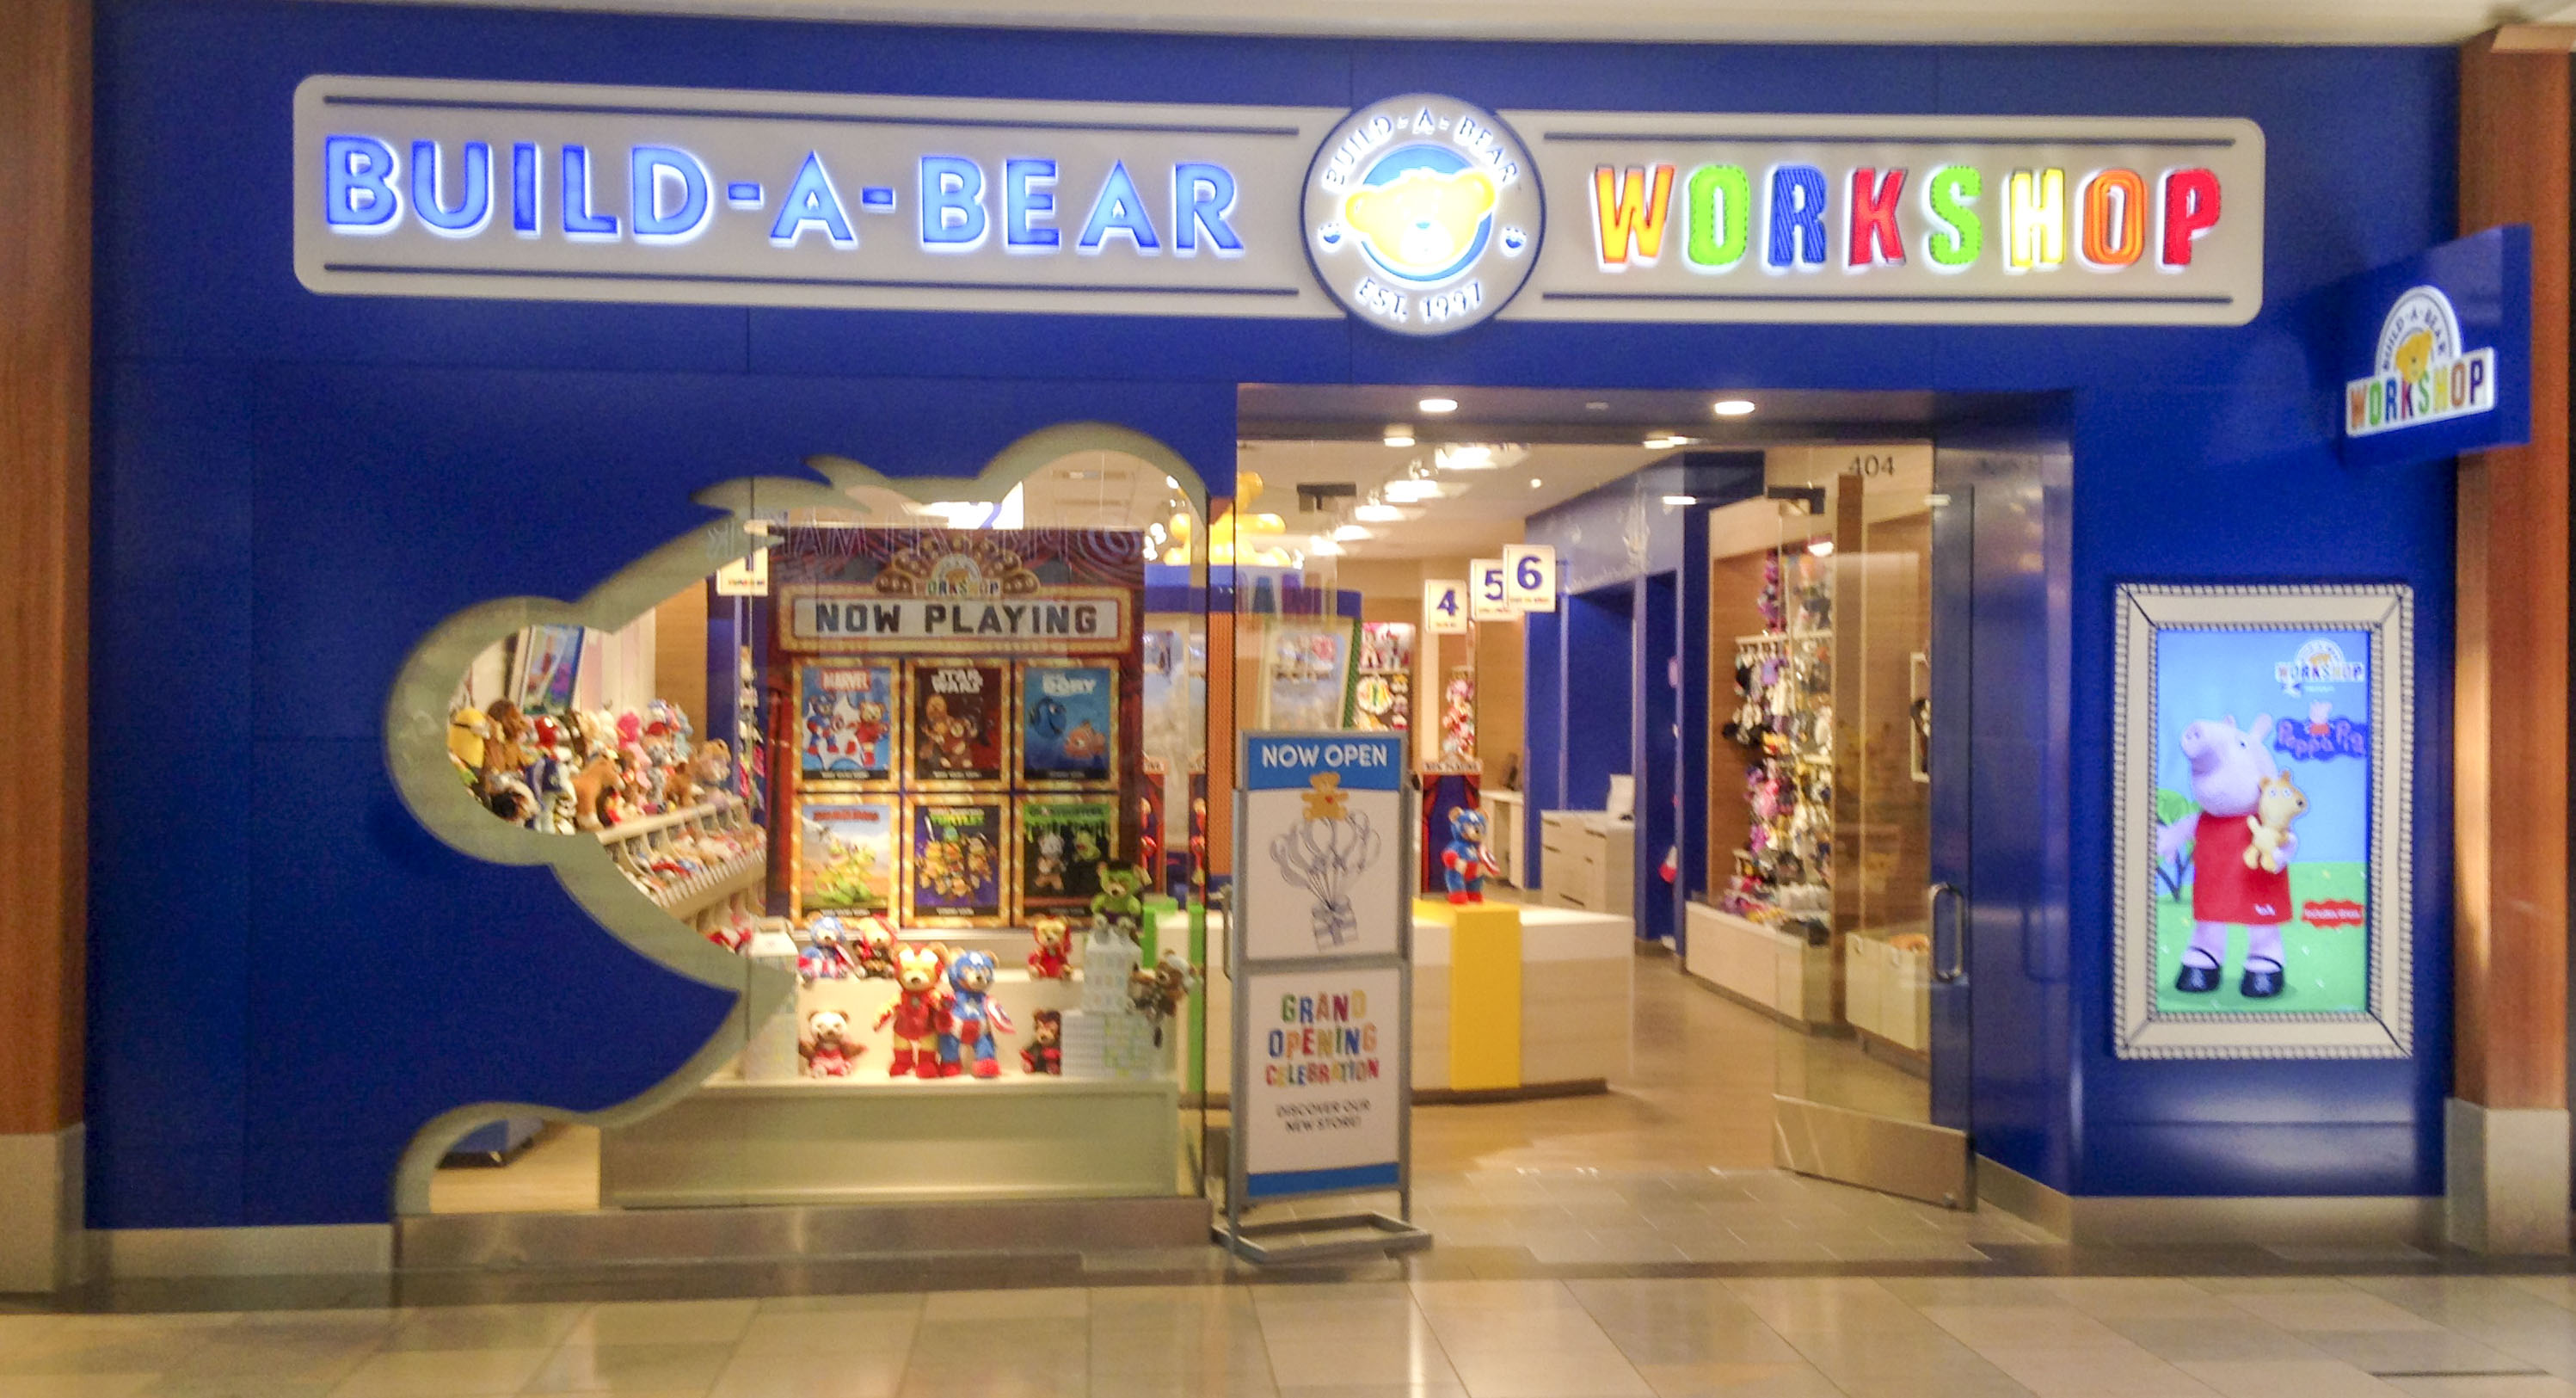 Build-A-Bear Workshop (Northstar)